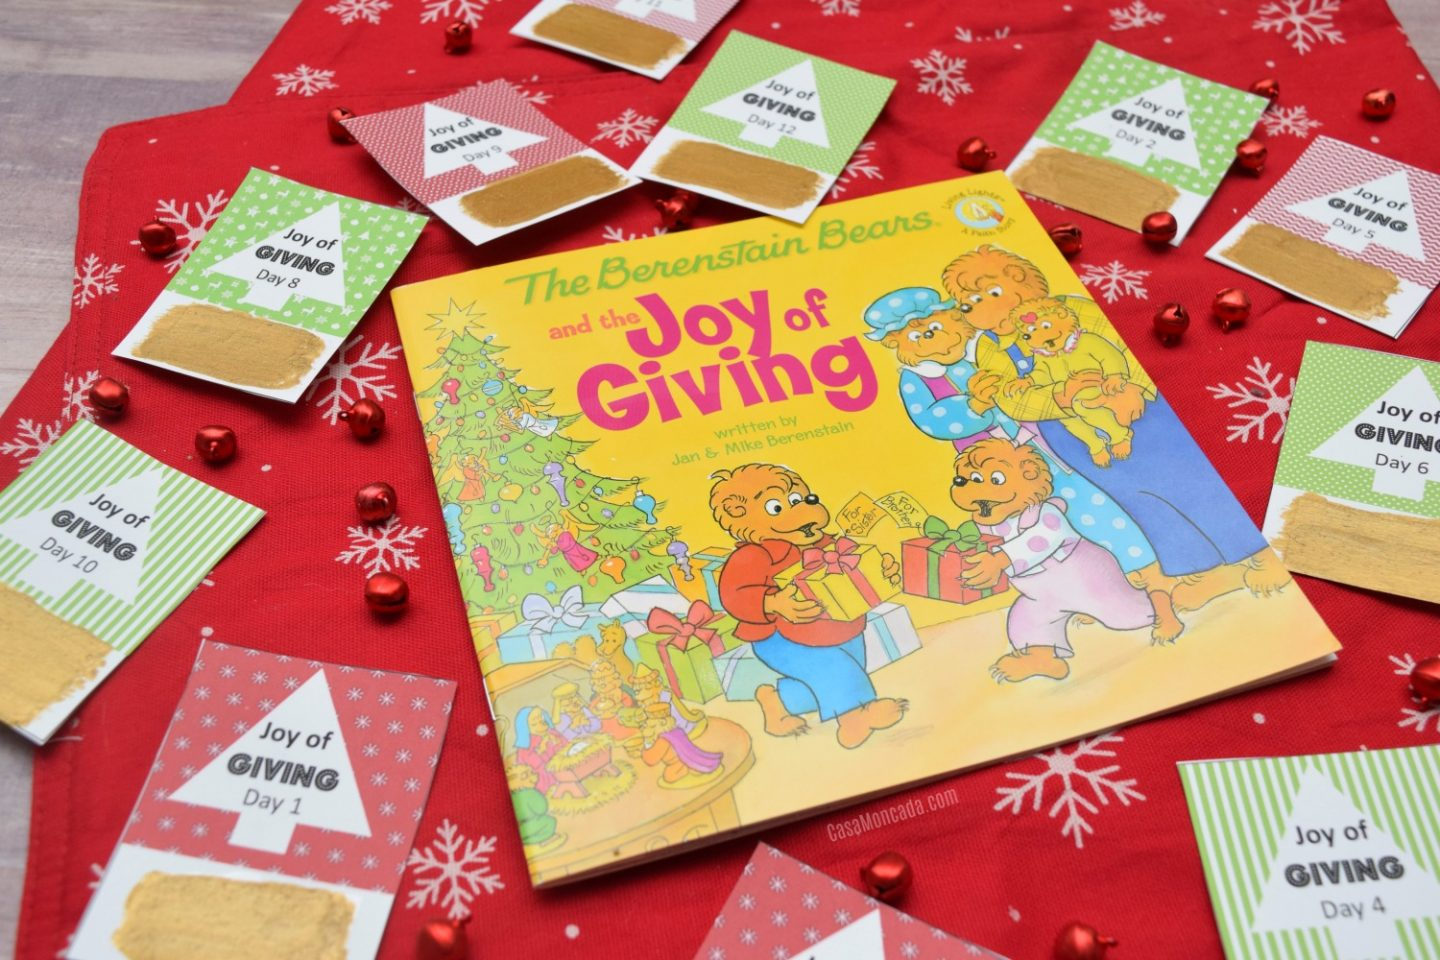 Joy of Giving scratch-off cards